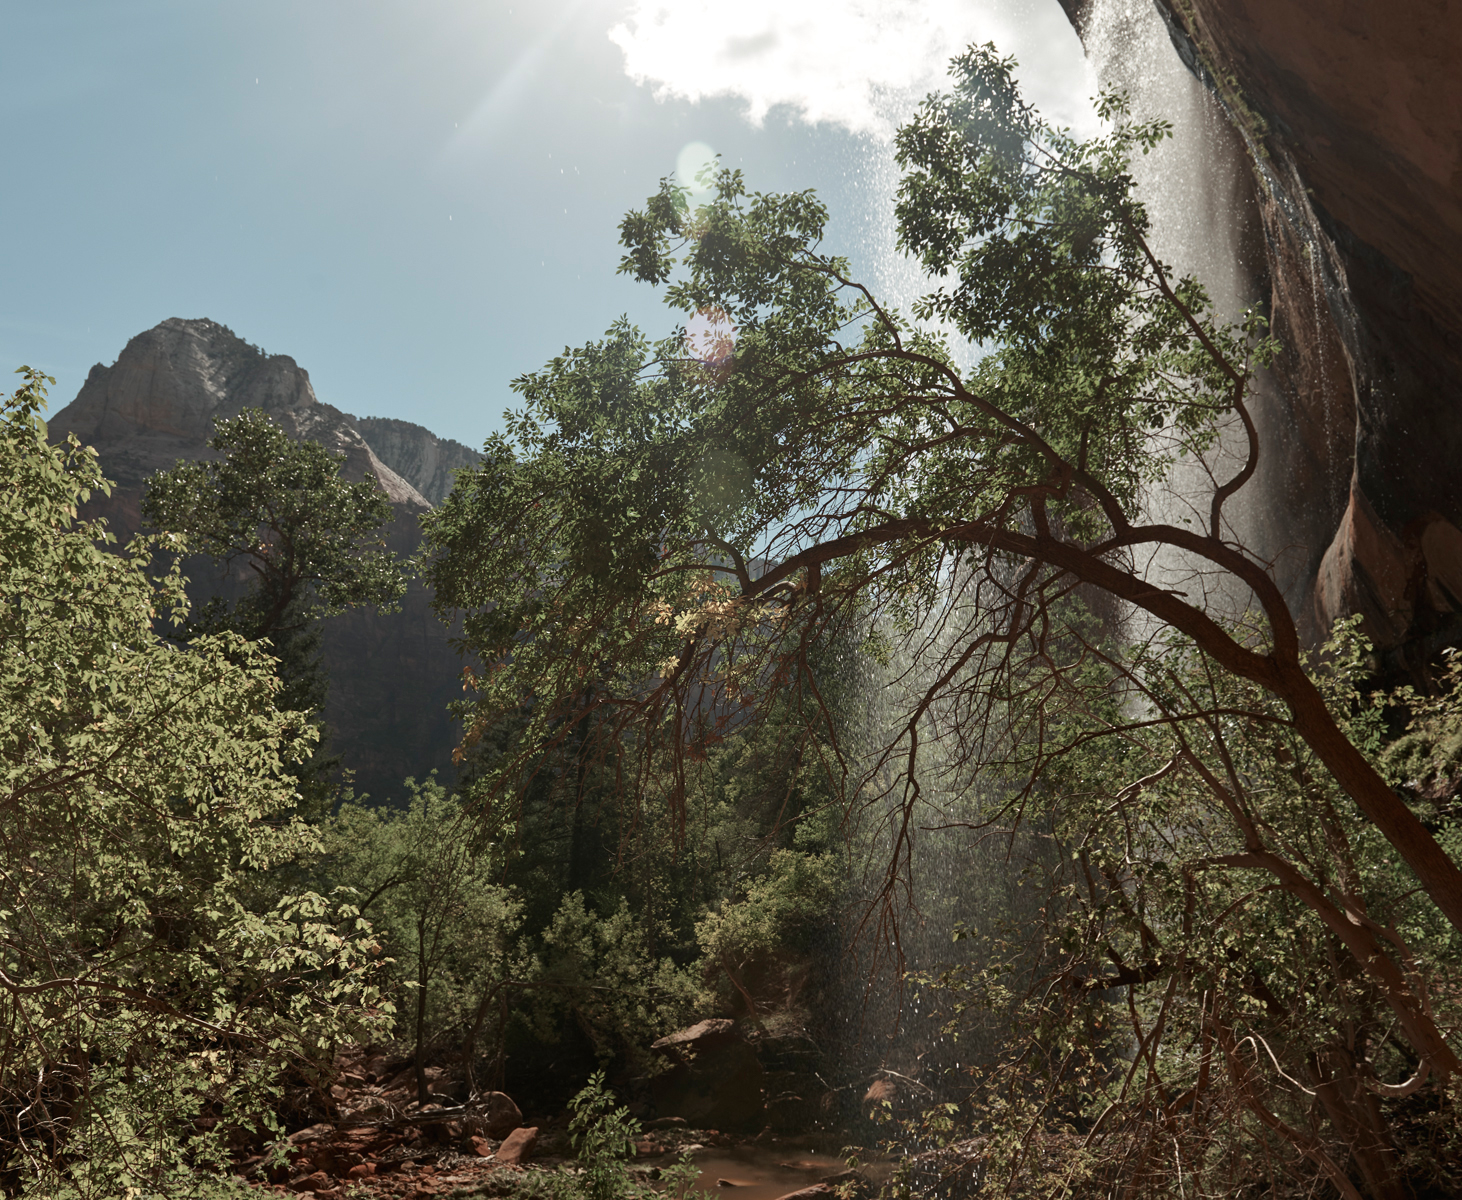 Waterfall on Emerald Pools hike in Zion national park.Kirsty Owen photography